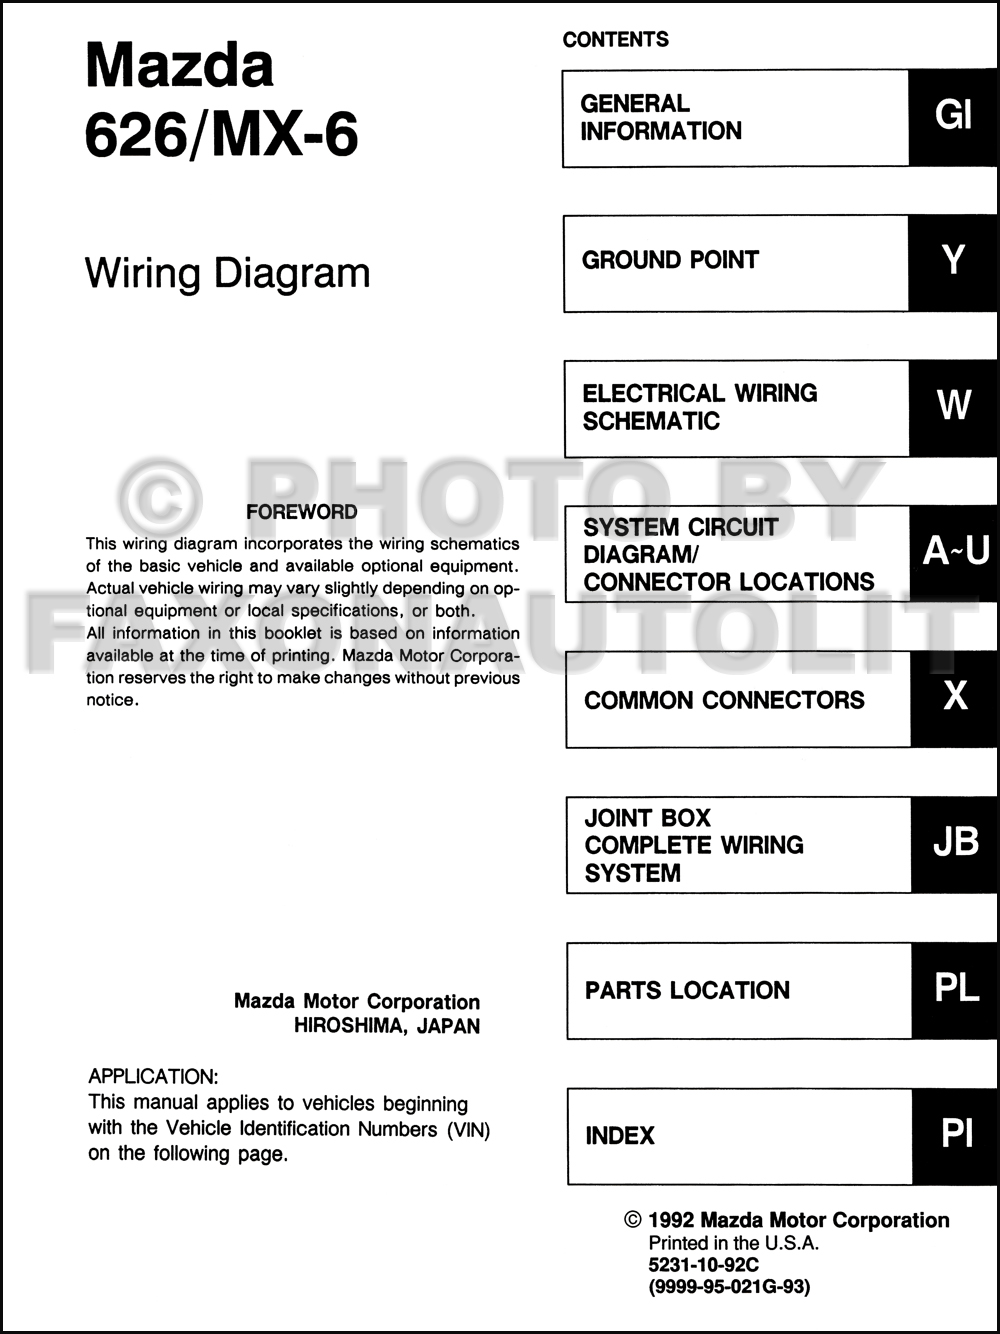 1993Mazda626MX6OWD TOC mazda 626 wiring diagram volkswagen cabrio wiring diagram \u2022 wiring  at n-0.co